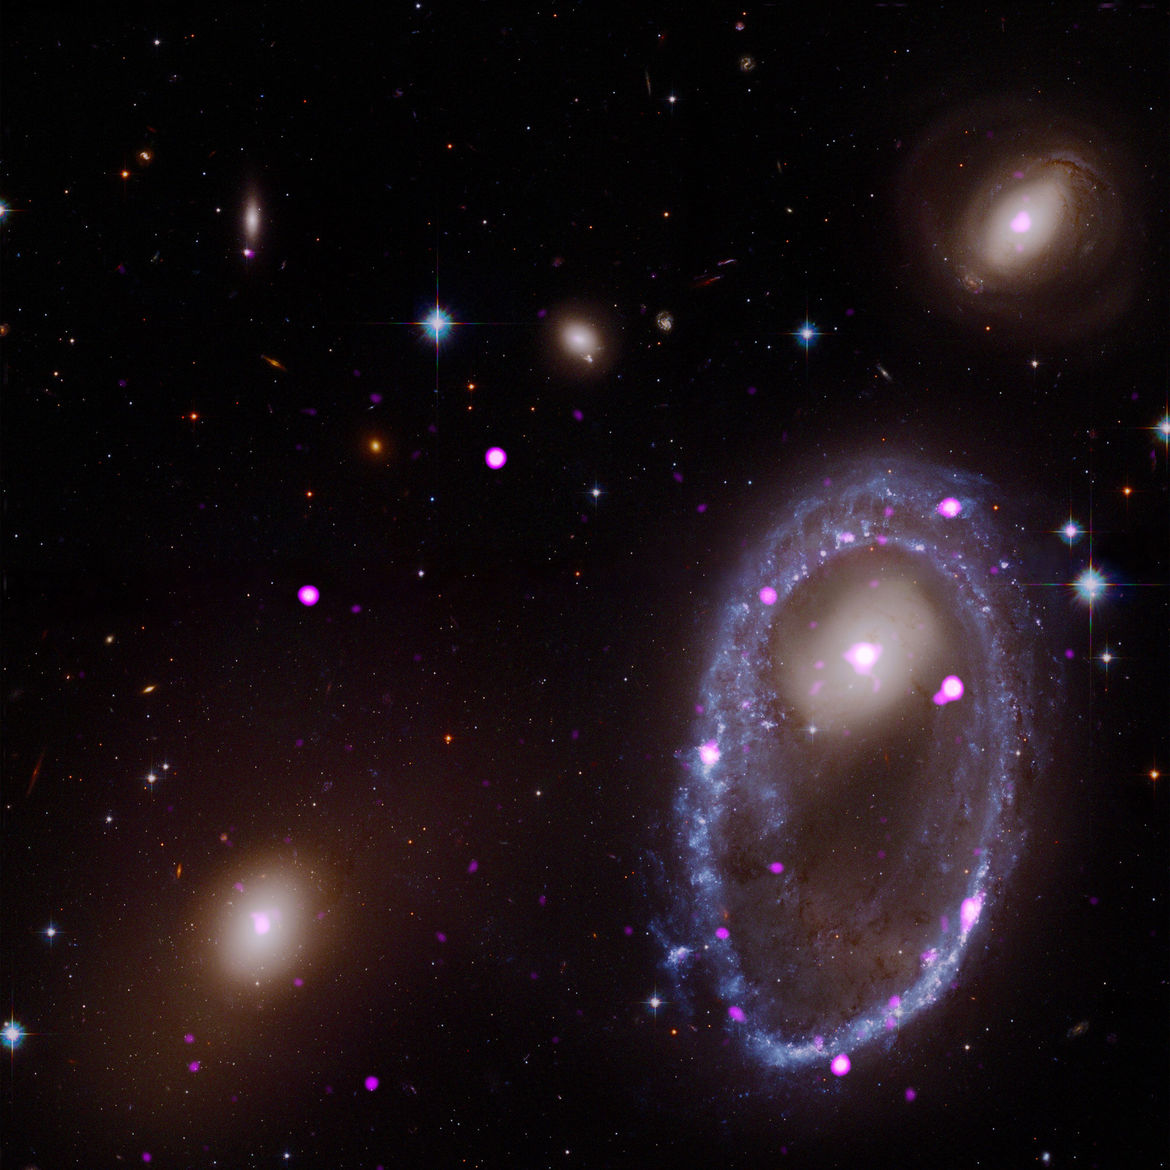 X-ray (purple) and optical (red/green/blue) composite image of AM 0644-071, showing the ring galaxy and the locations of black holes and neutron stars. Credit: X-ray: NASA/CXC/INAF/A. Wolter et al; Optical: NASA/STScI